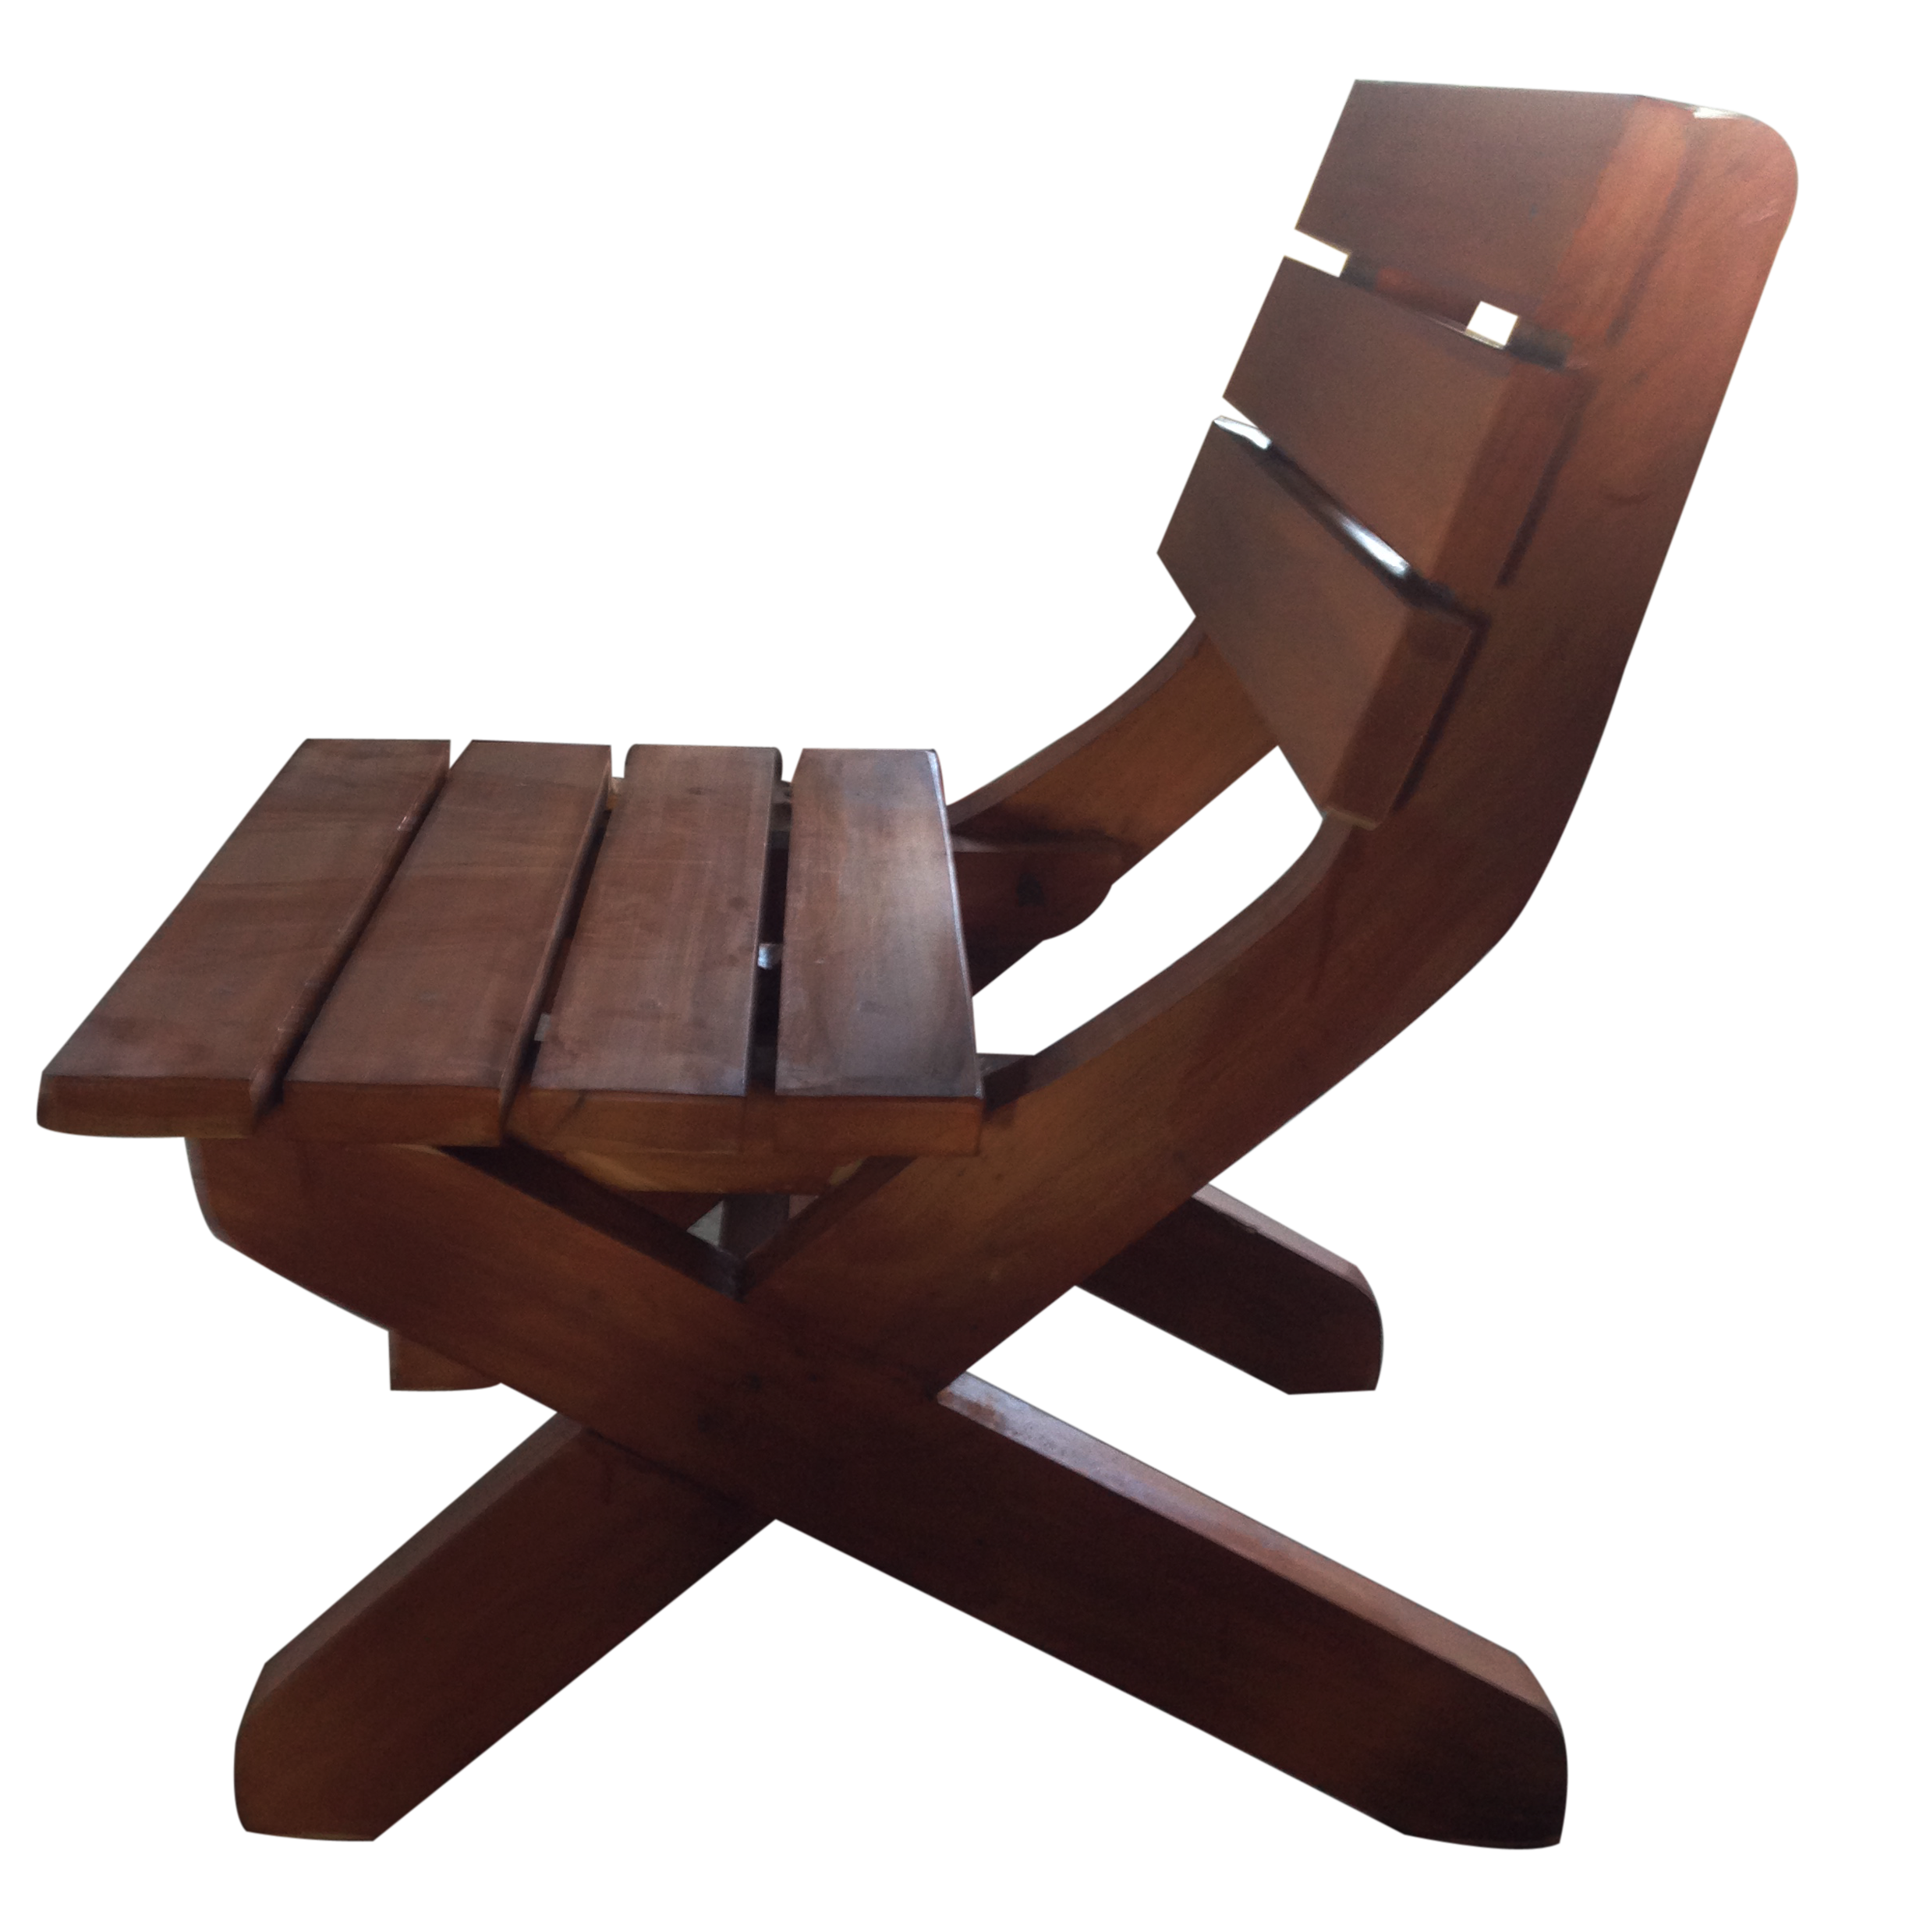 100 Solid Wood Furniture Bangalore Natural Living  : 01 chair from ll100proof.com size 2448 x 2478 png 2733kB